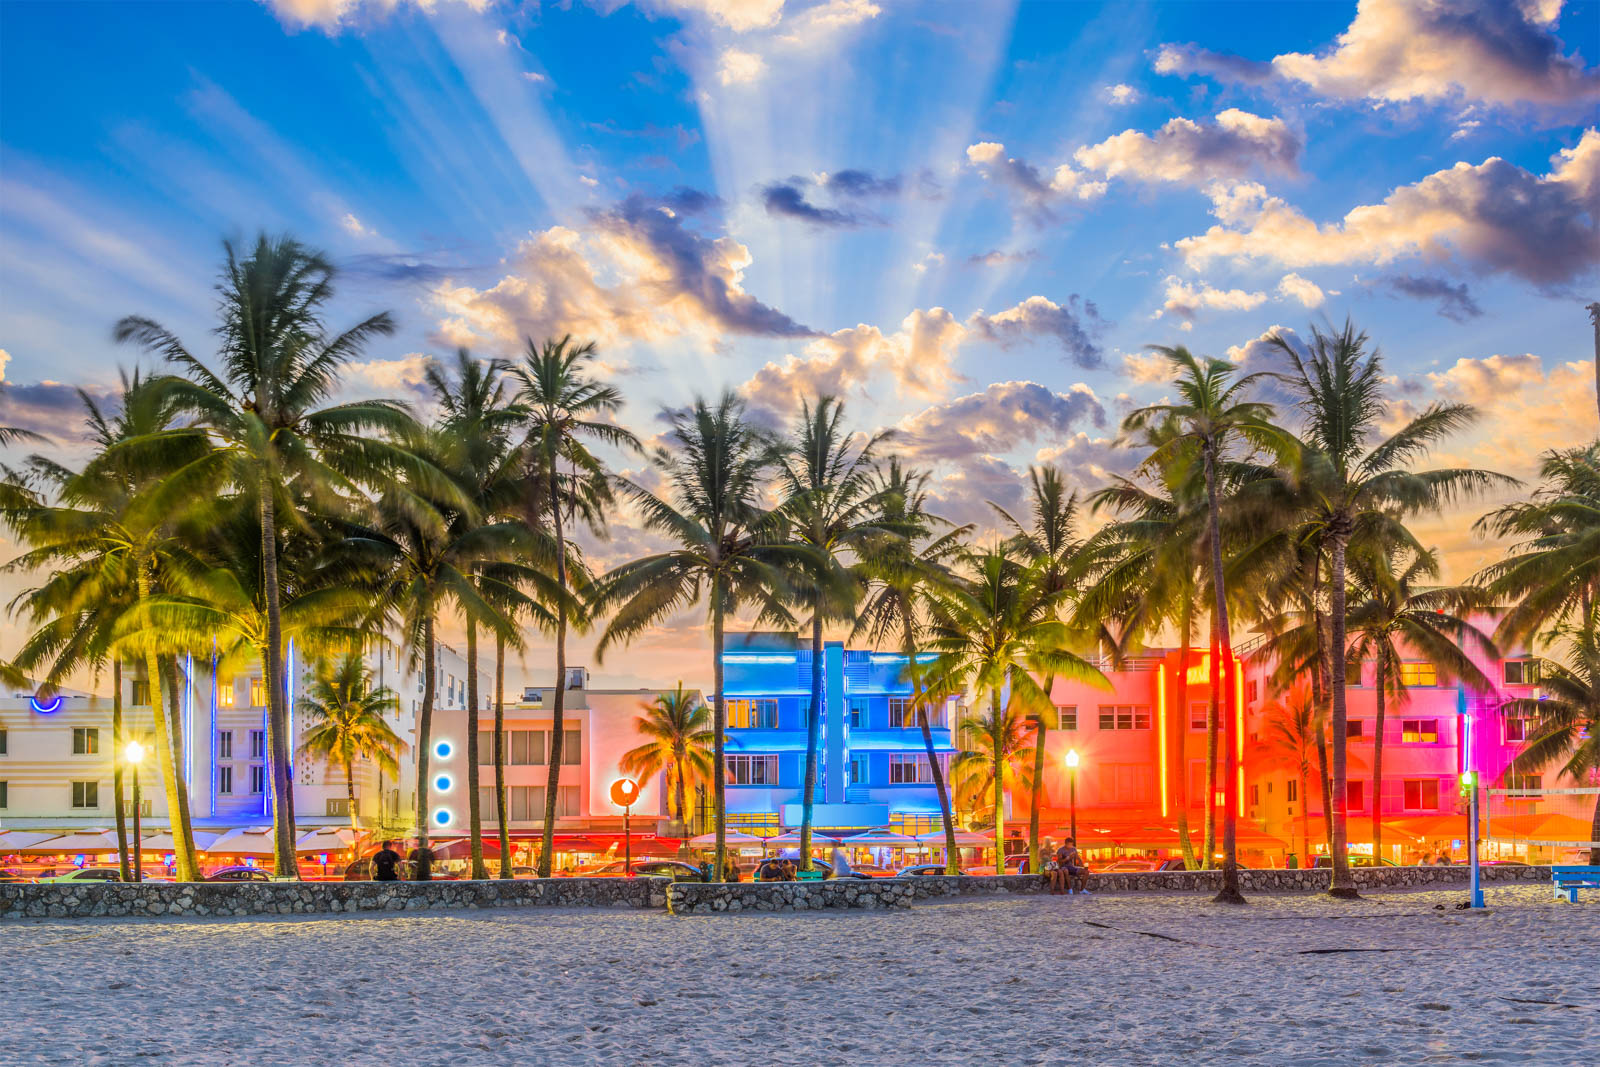 Ocean Drive in Miami is one of the cool places to visit in Florida. Walk down the street and people watch for one of the most entertaining things to do in South Florida.